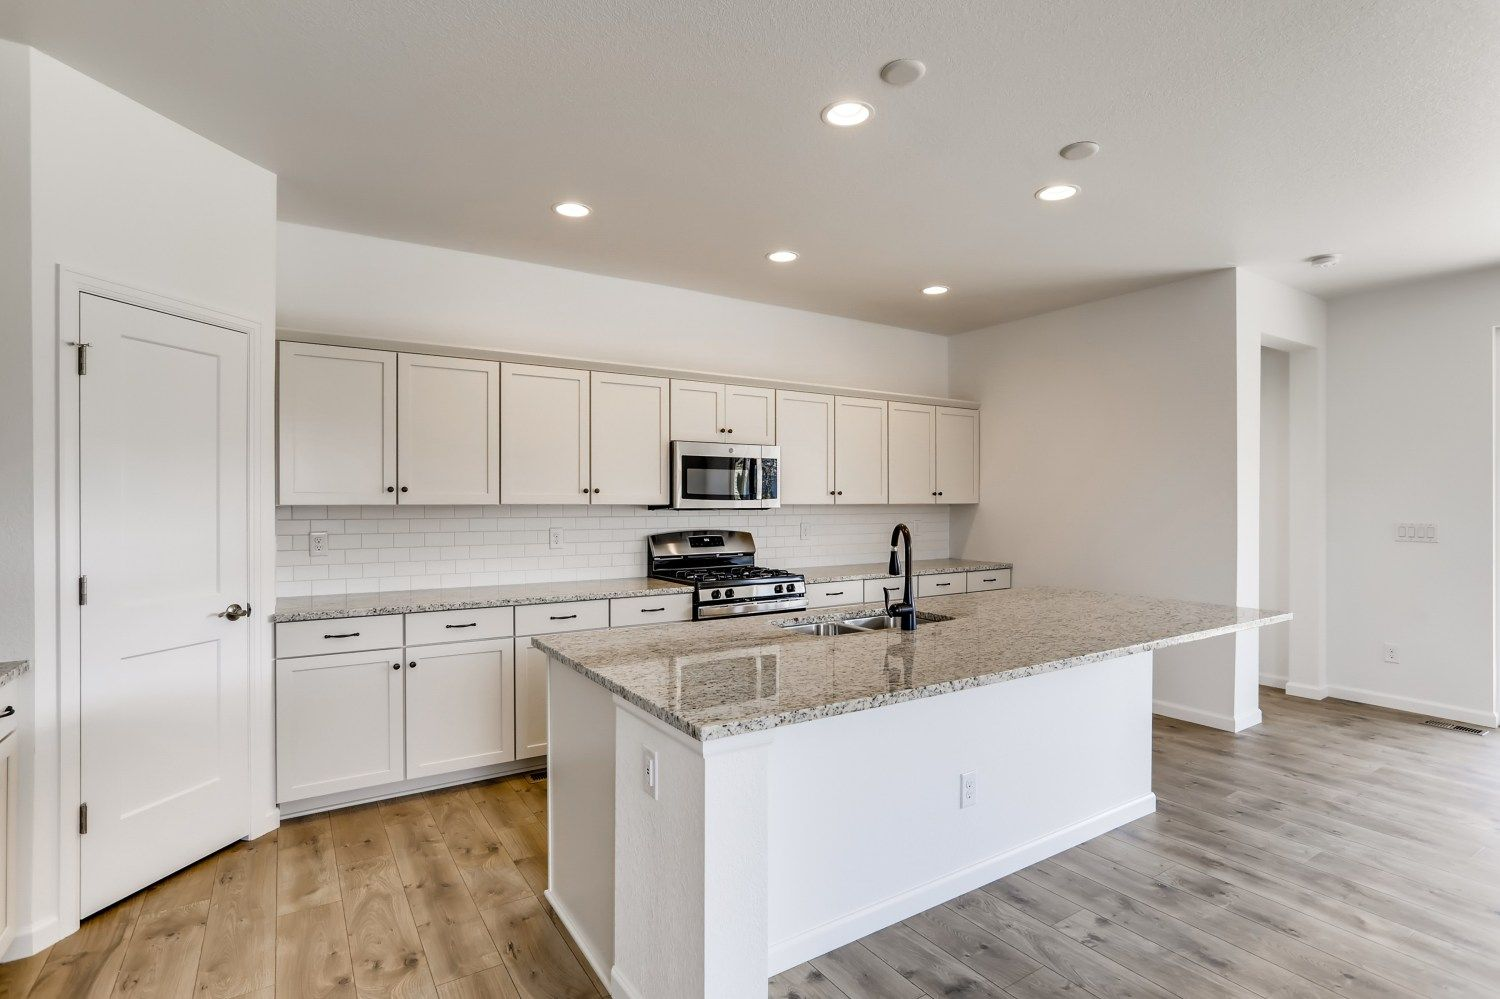 Kitchen featured in The Crestone By Taylor Morrison in Denver, CO